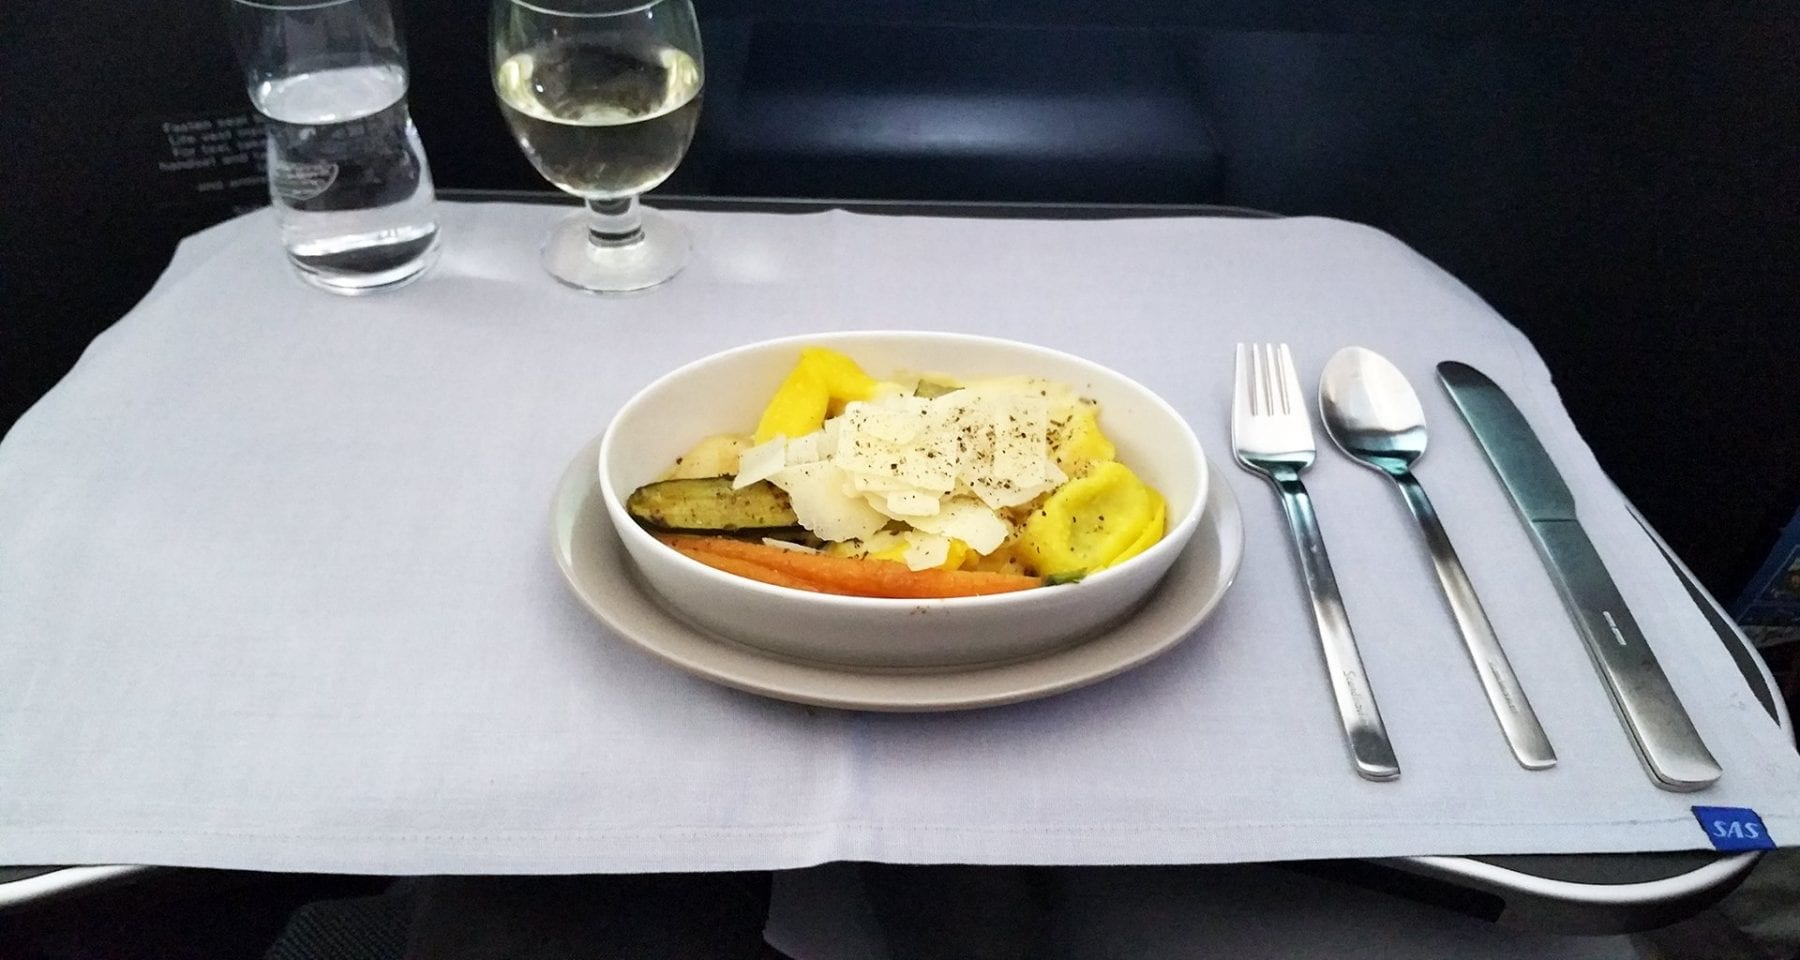 SAS Scandinavian airlines business class pasta dish